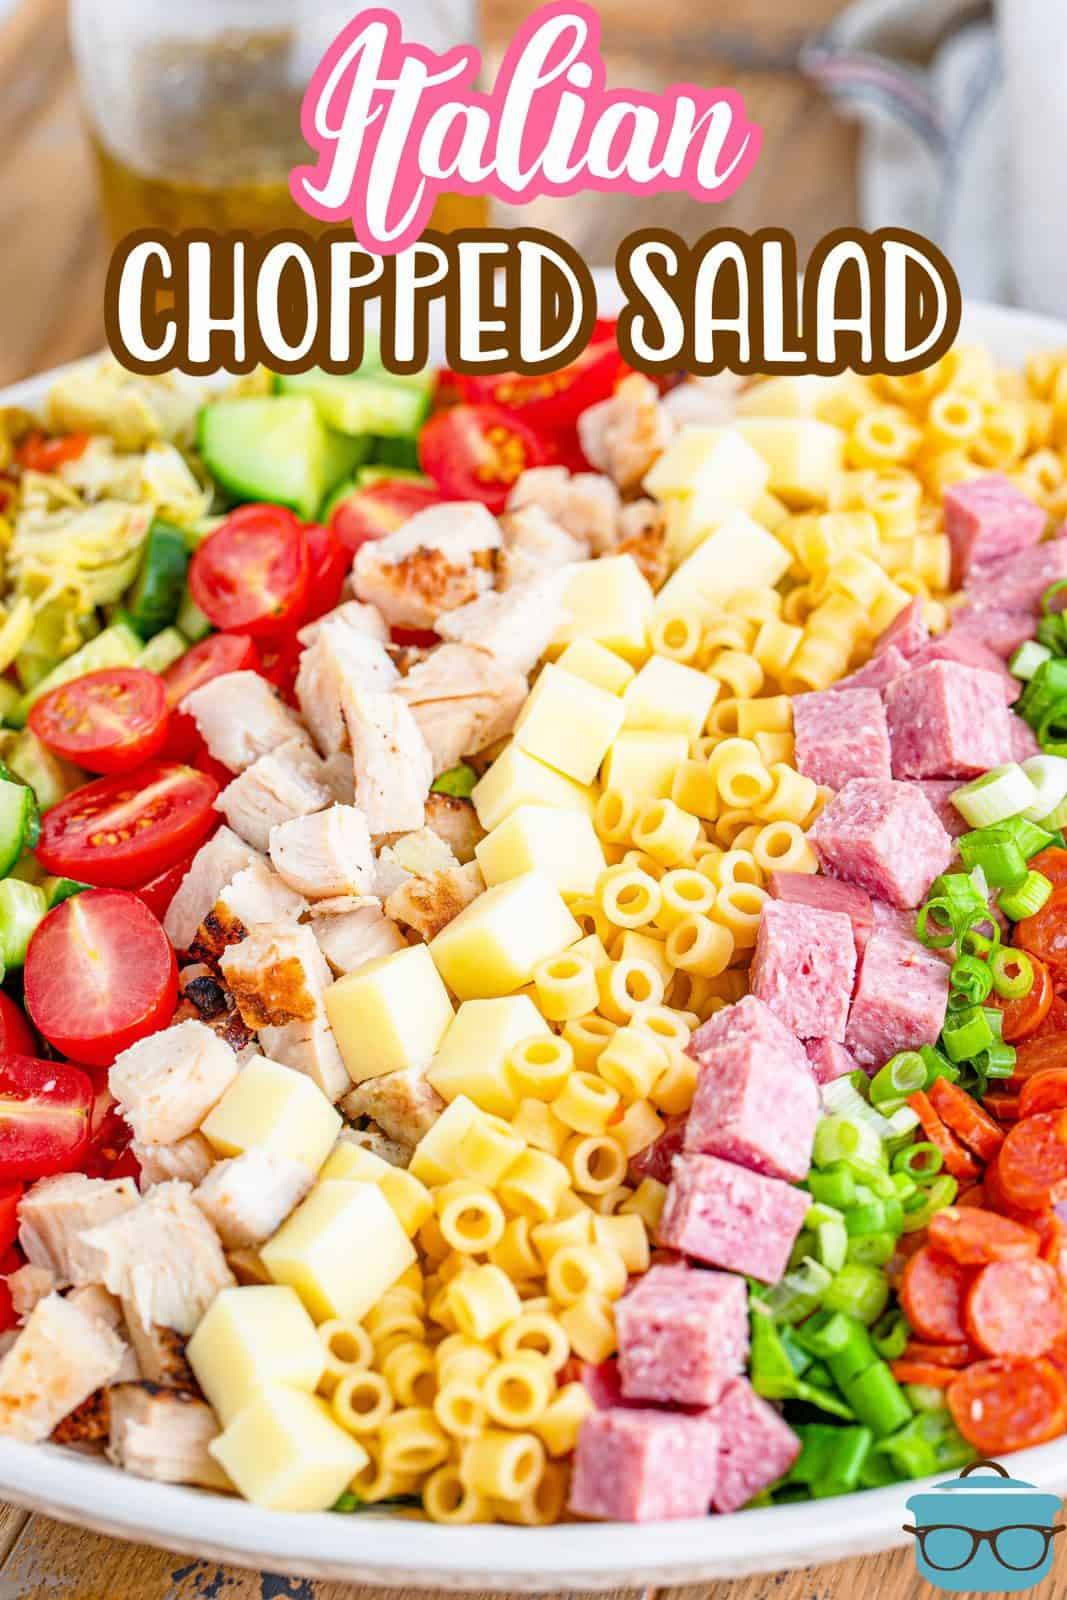 Italian Chopped Salad recipe with homemade dressing recipe from The Country Cook. Rows of each ingredient lined up in a large white bowl